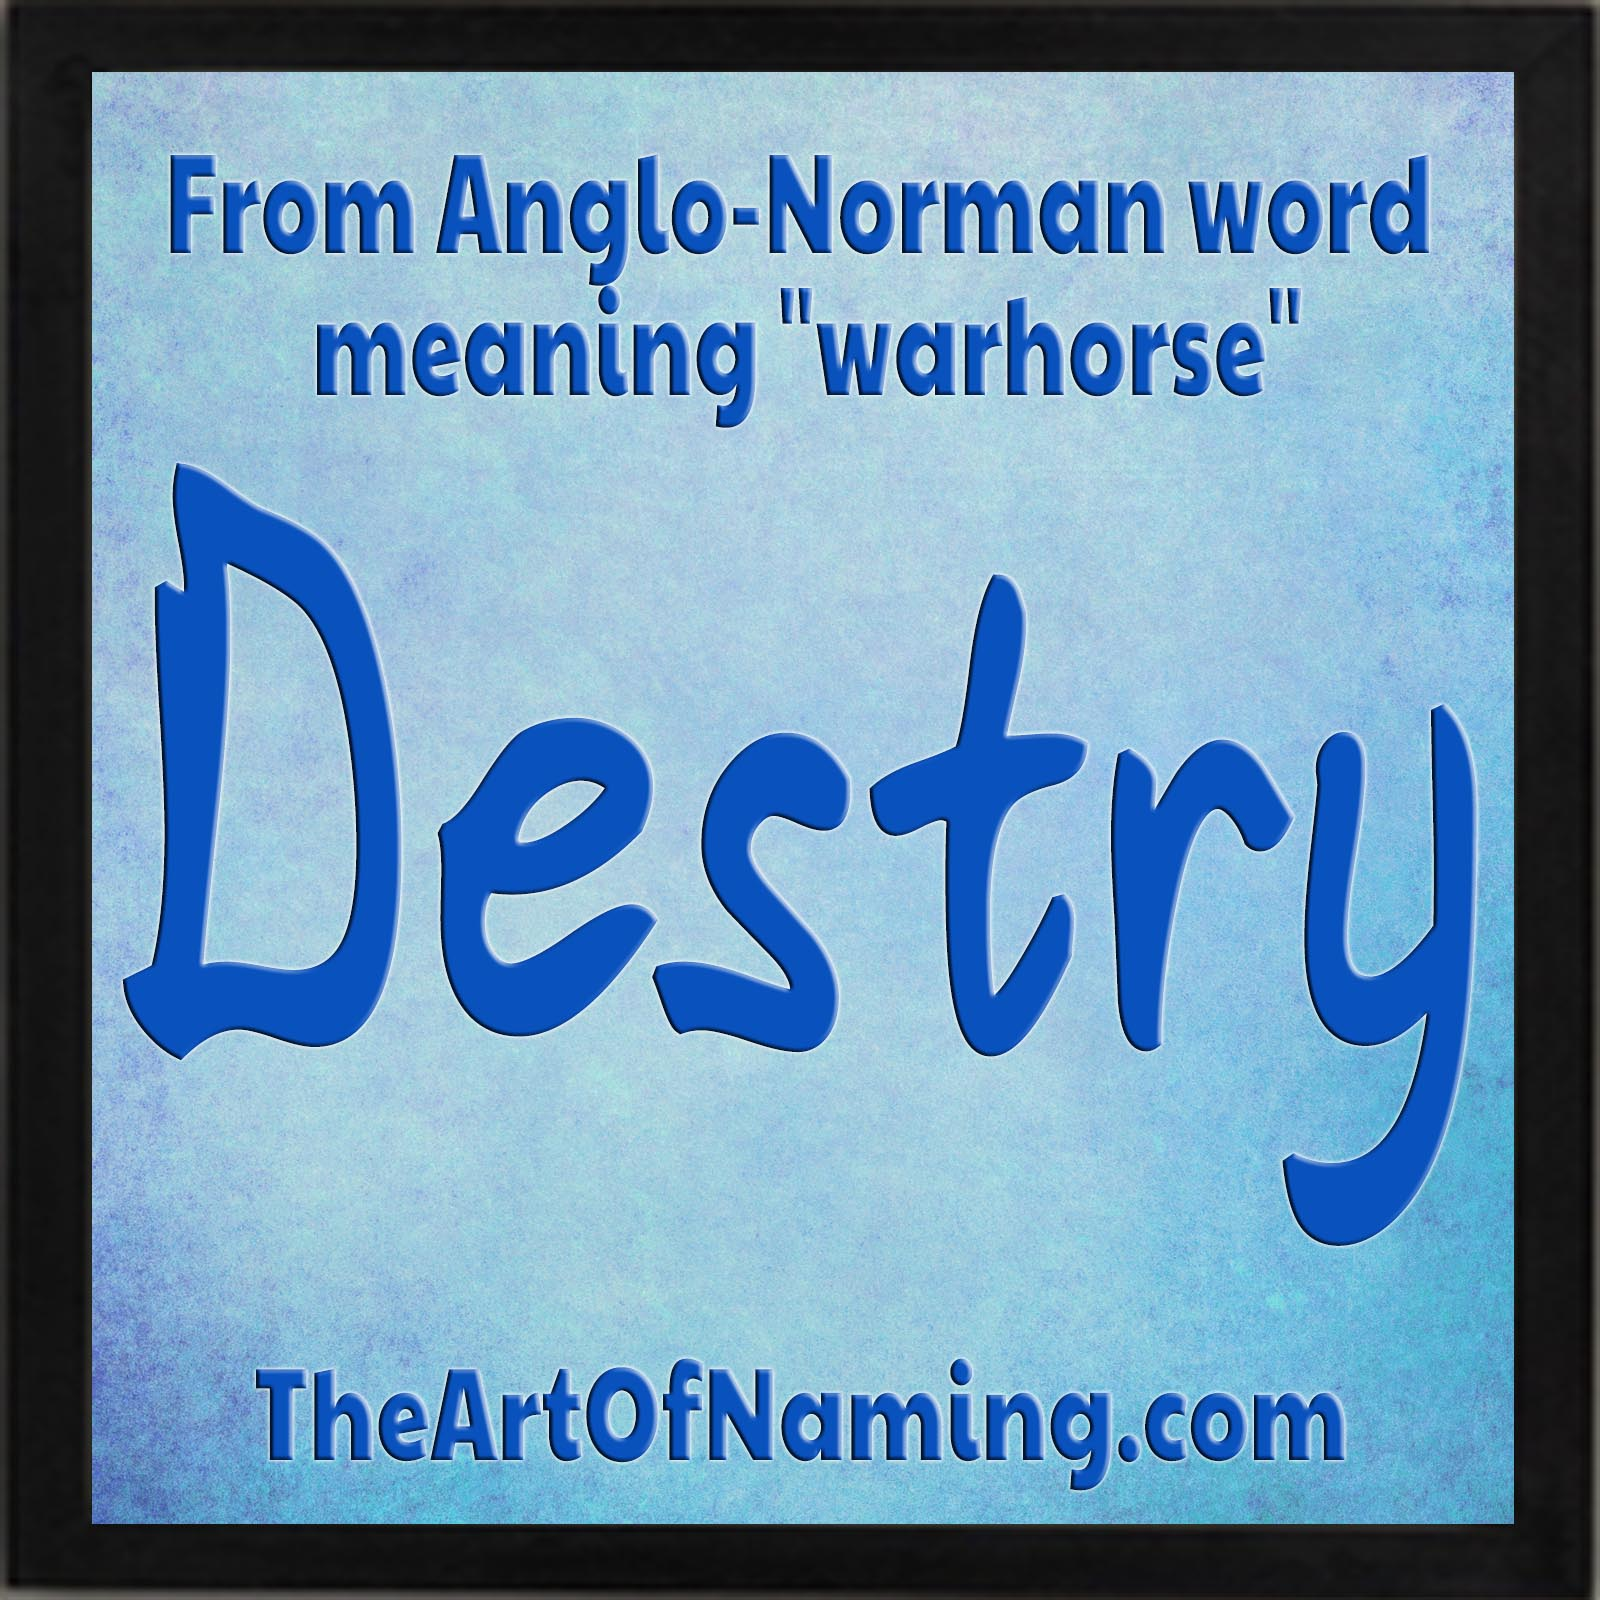 Destry Is The English Form Of Destrier A French Surname Derived From Anglo Norman Word Destrer Meaning Warhorse Best Known War